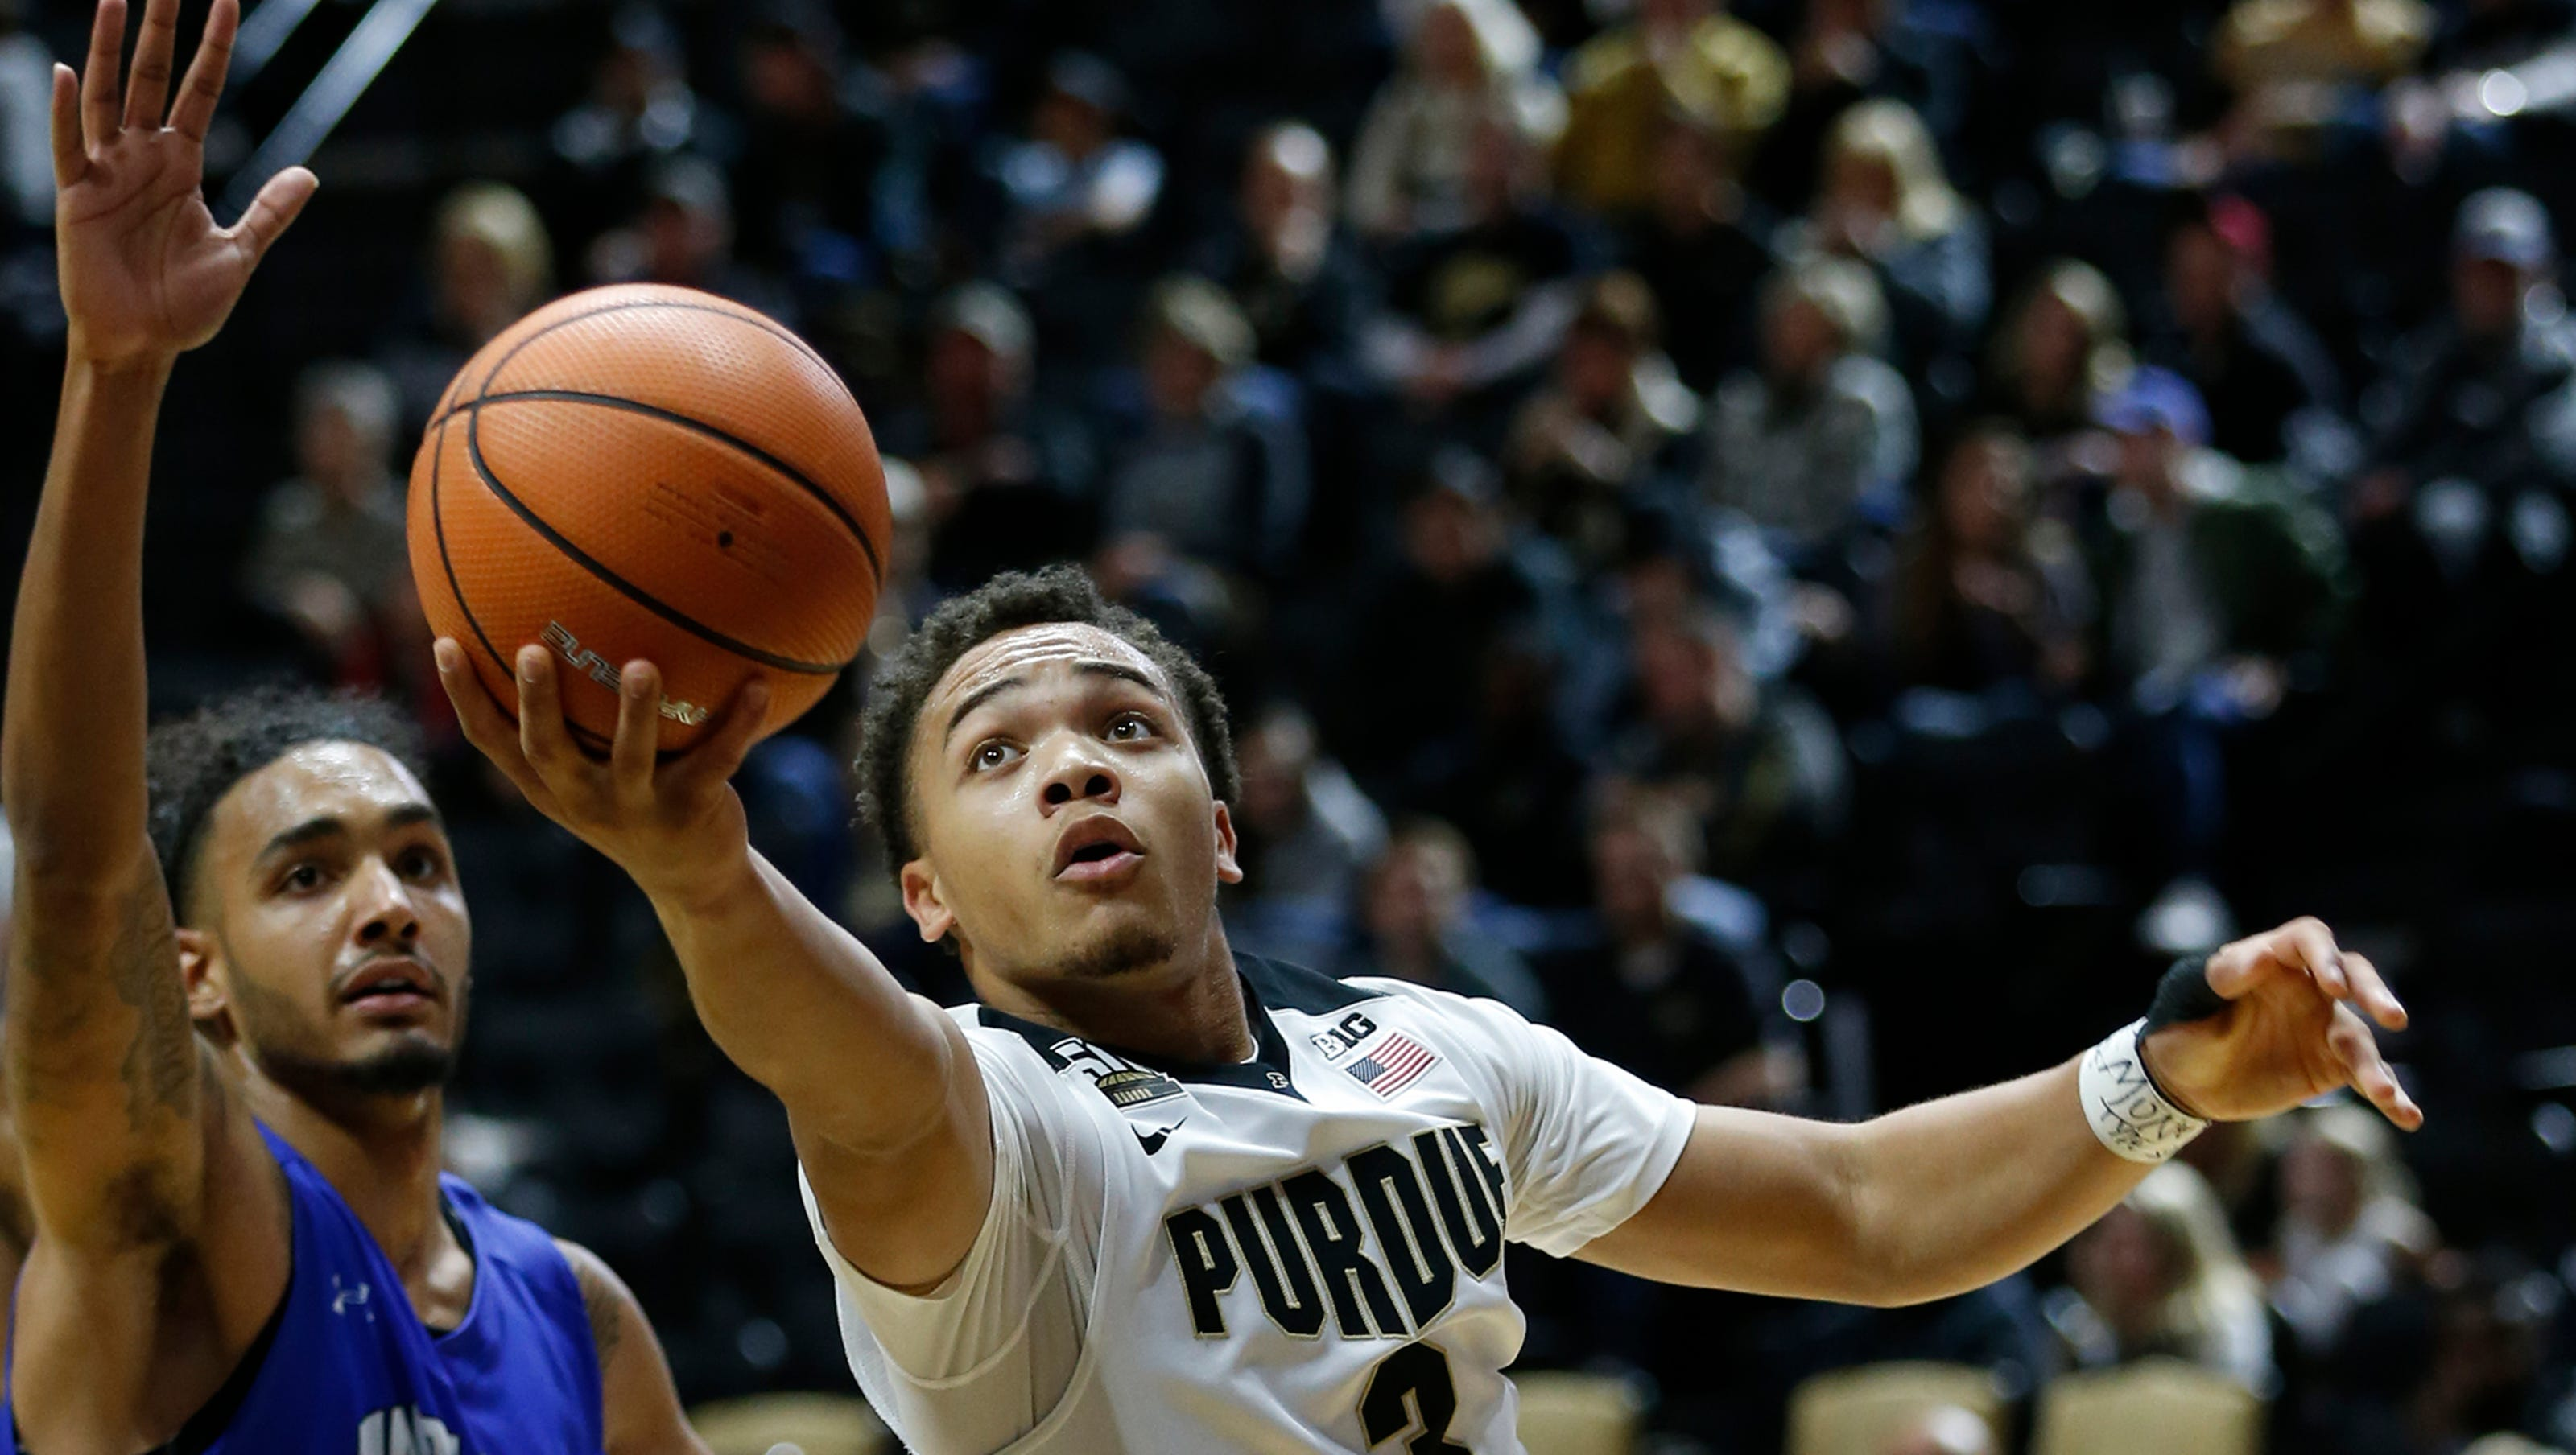 Get the latest Purdue Boilermakers news scores stats standings rumors and more from ESPN